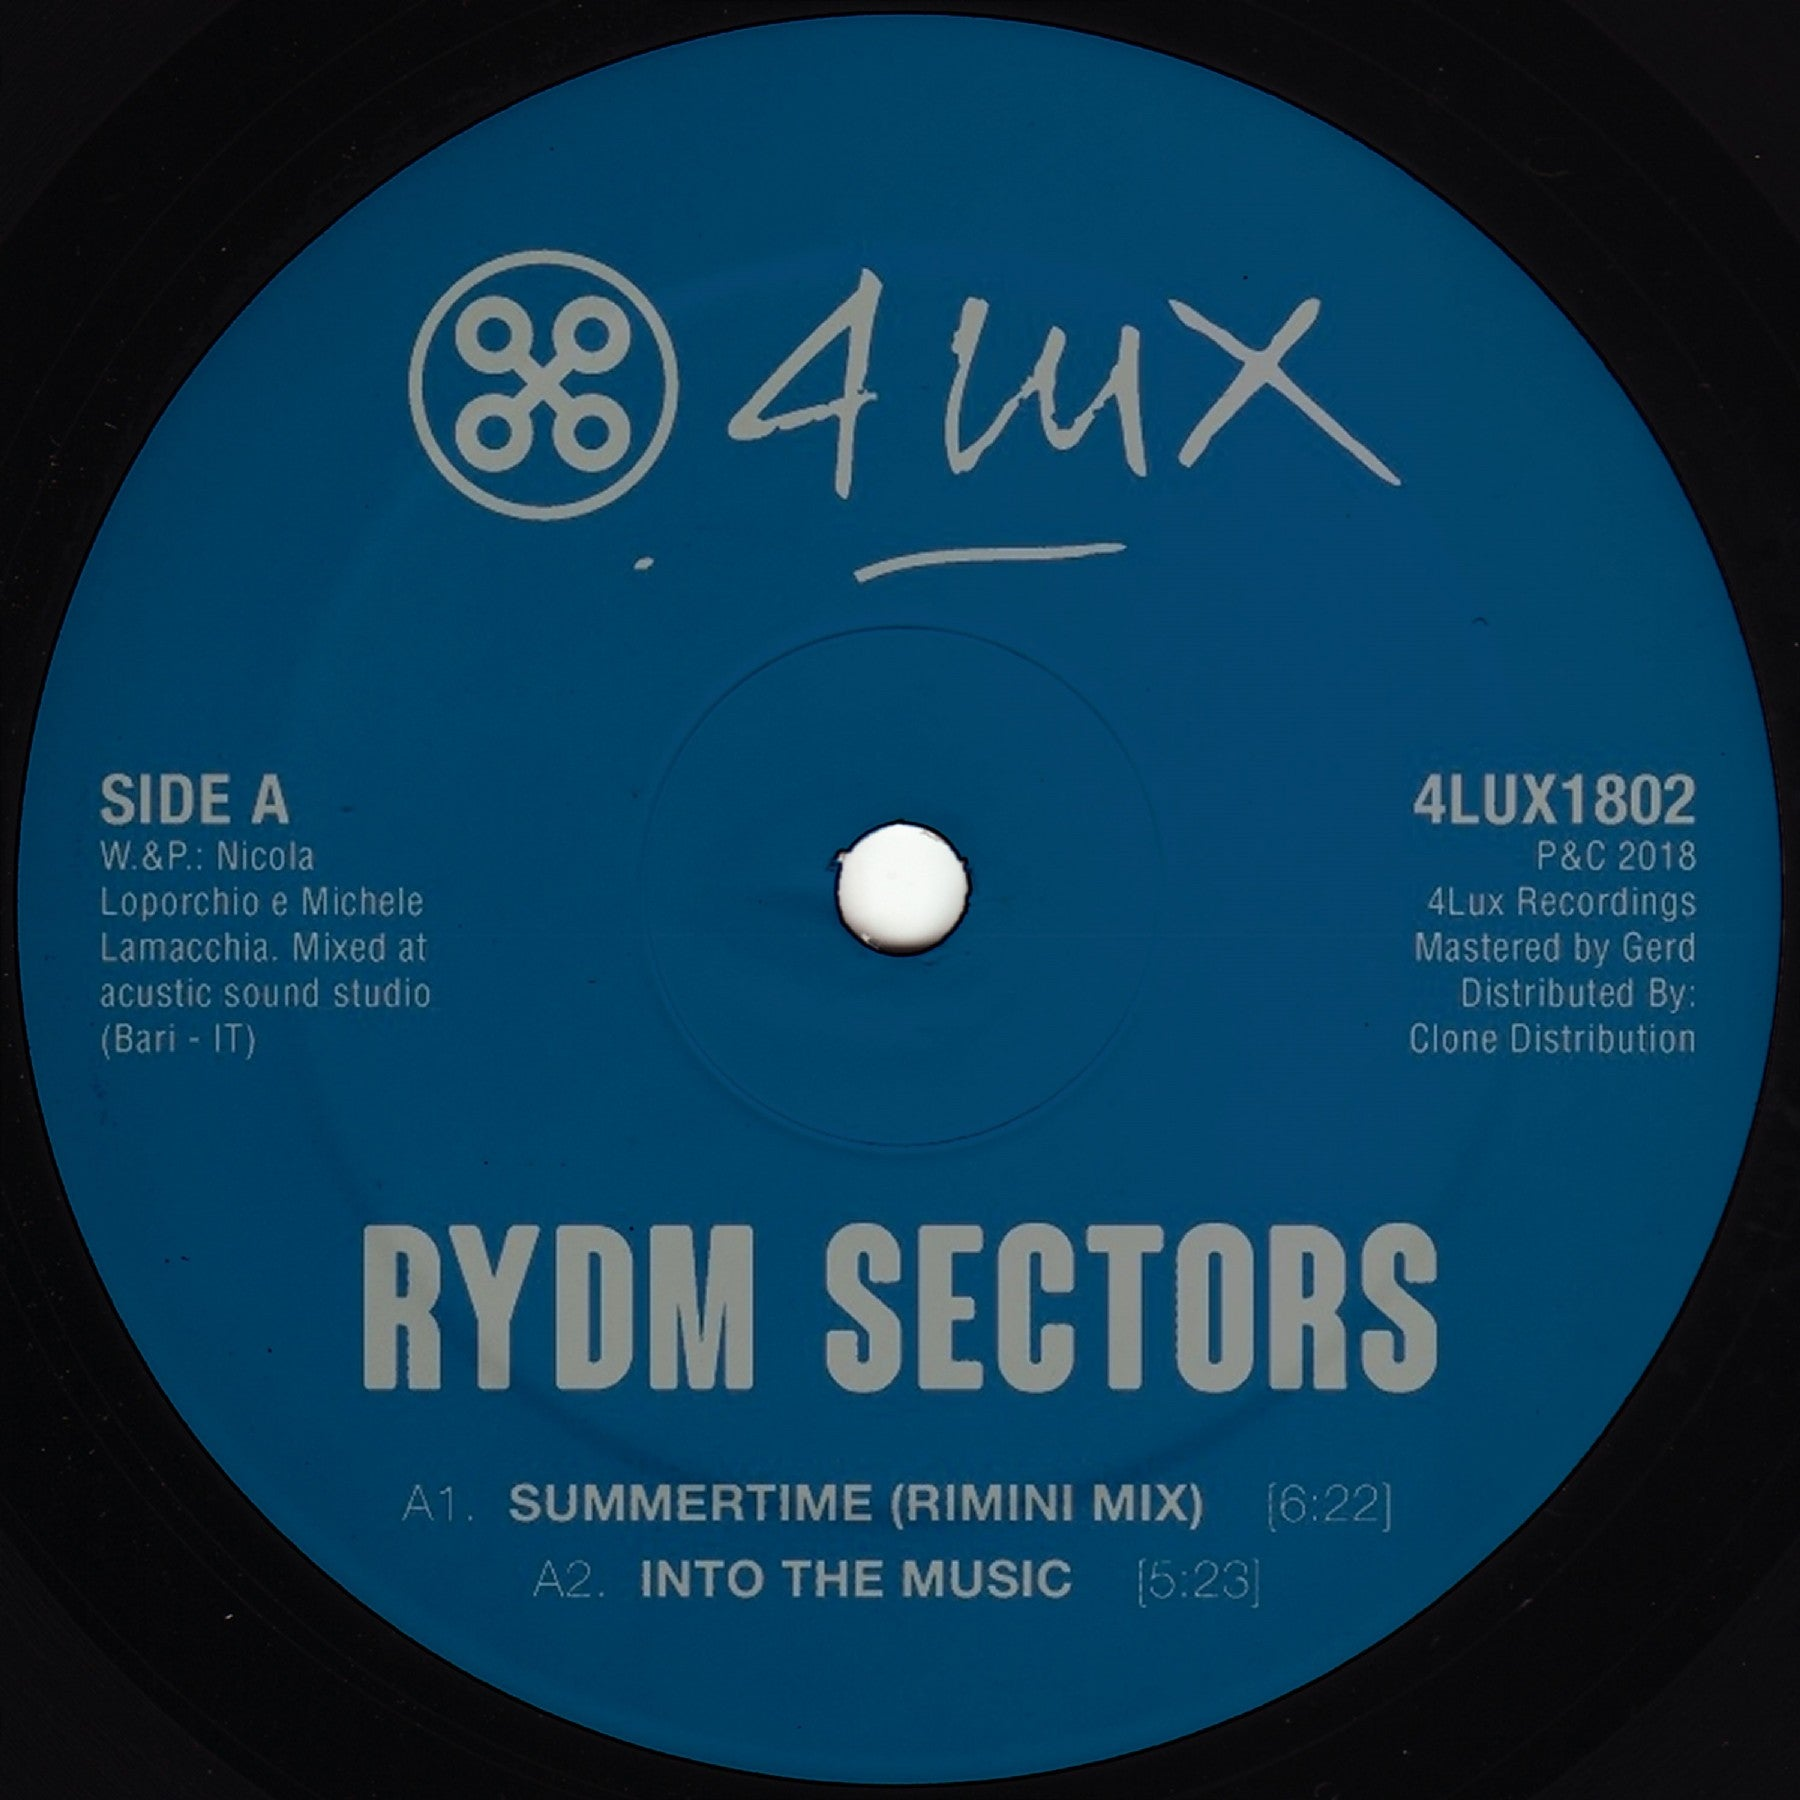 Rydm Sectors - Summertime